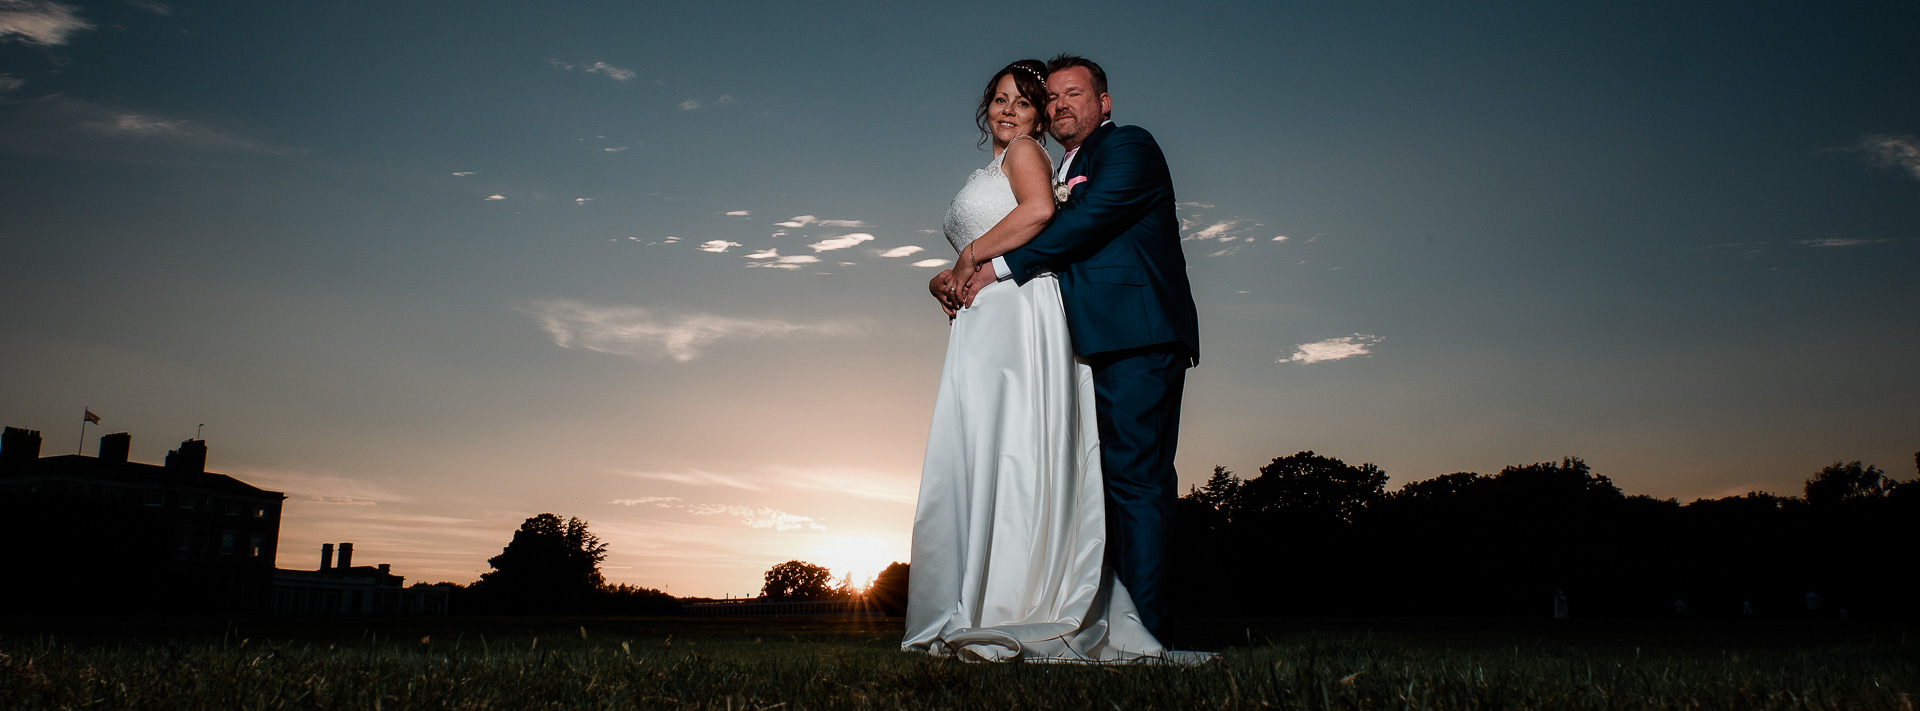 Lynsey and Mark's Wedding at Woolverstone Hall